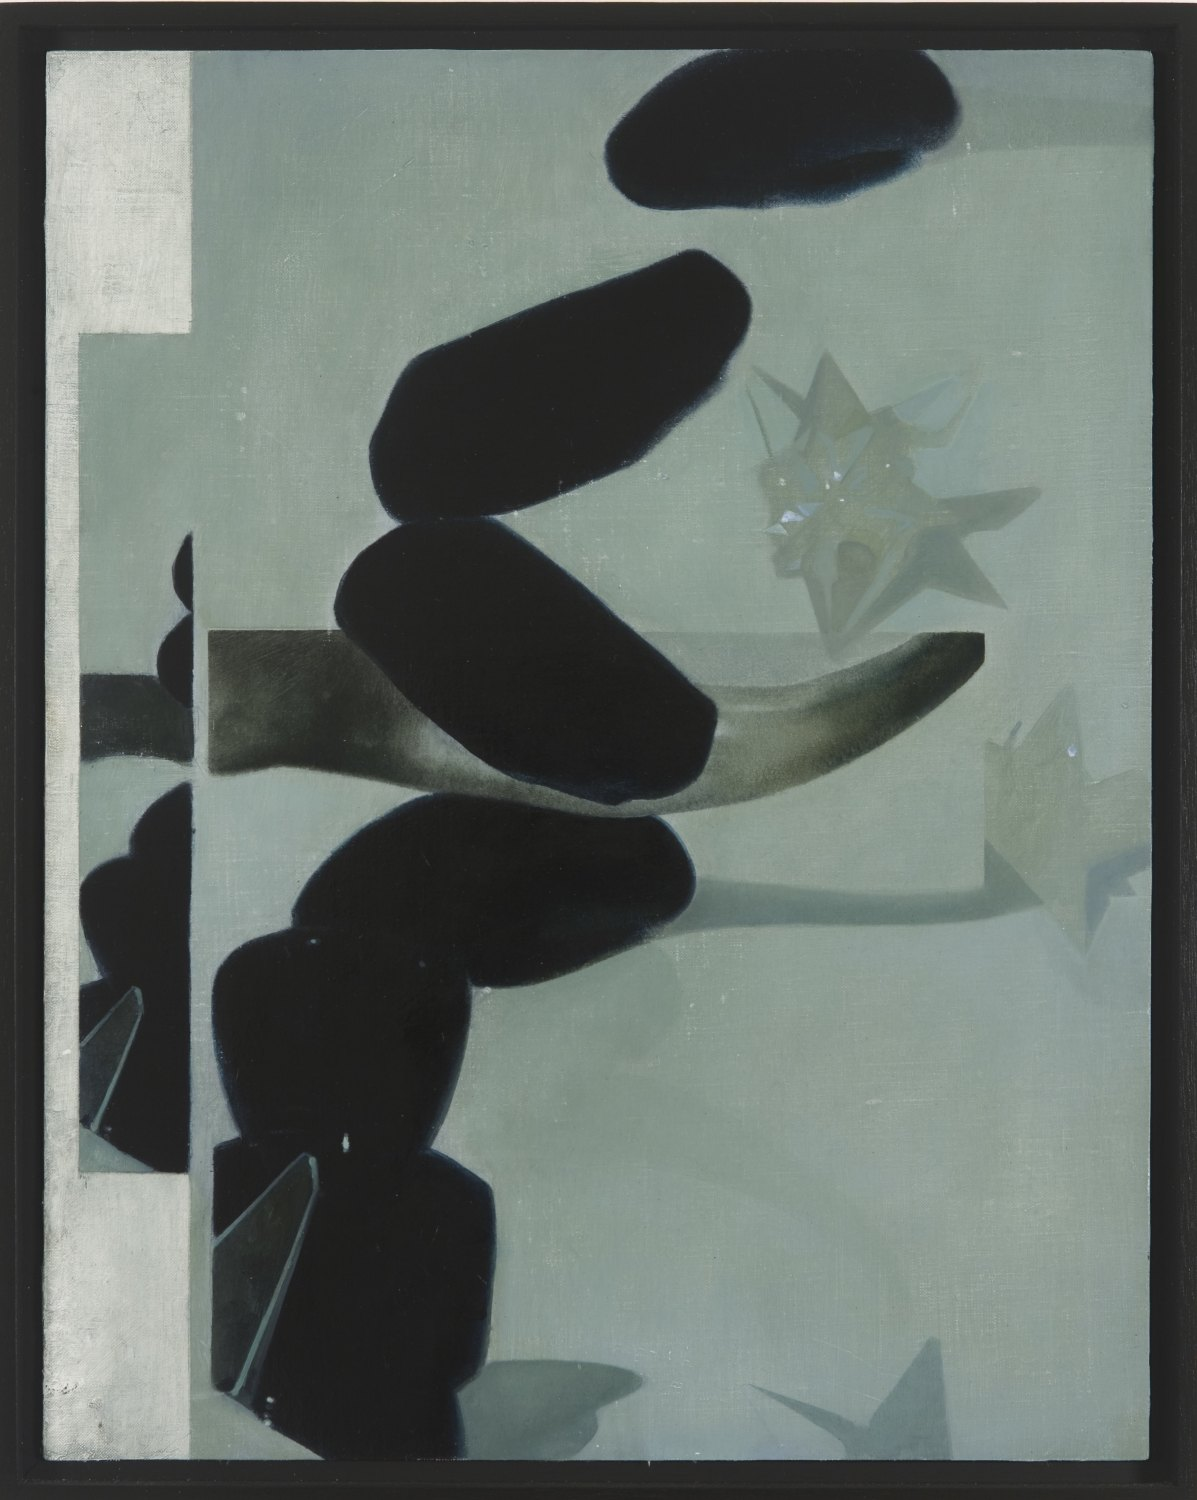 Victor Man Pagan Space, 2010 Oil on linen mounted on wood, 42 × 33 cm